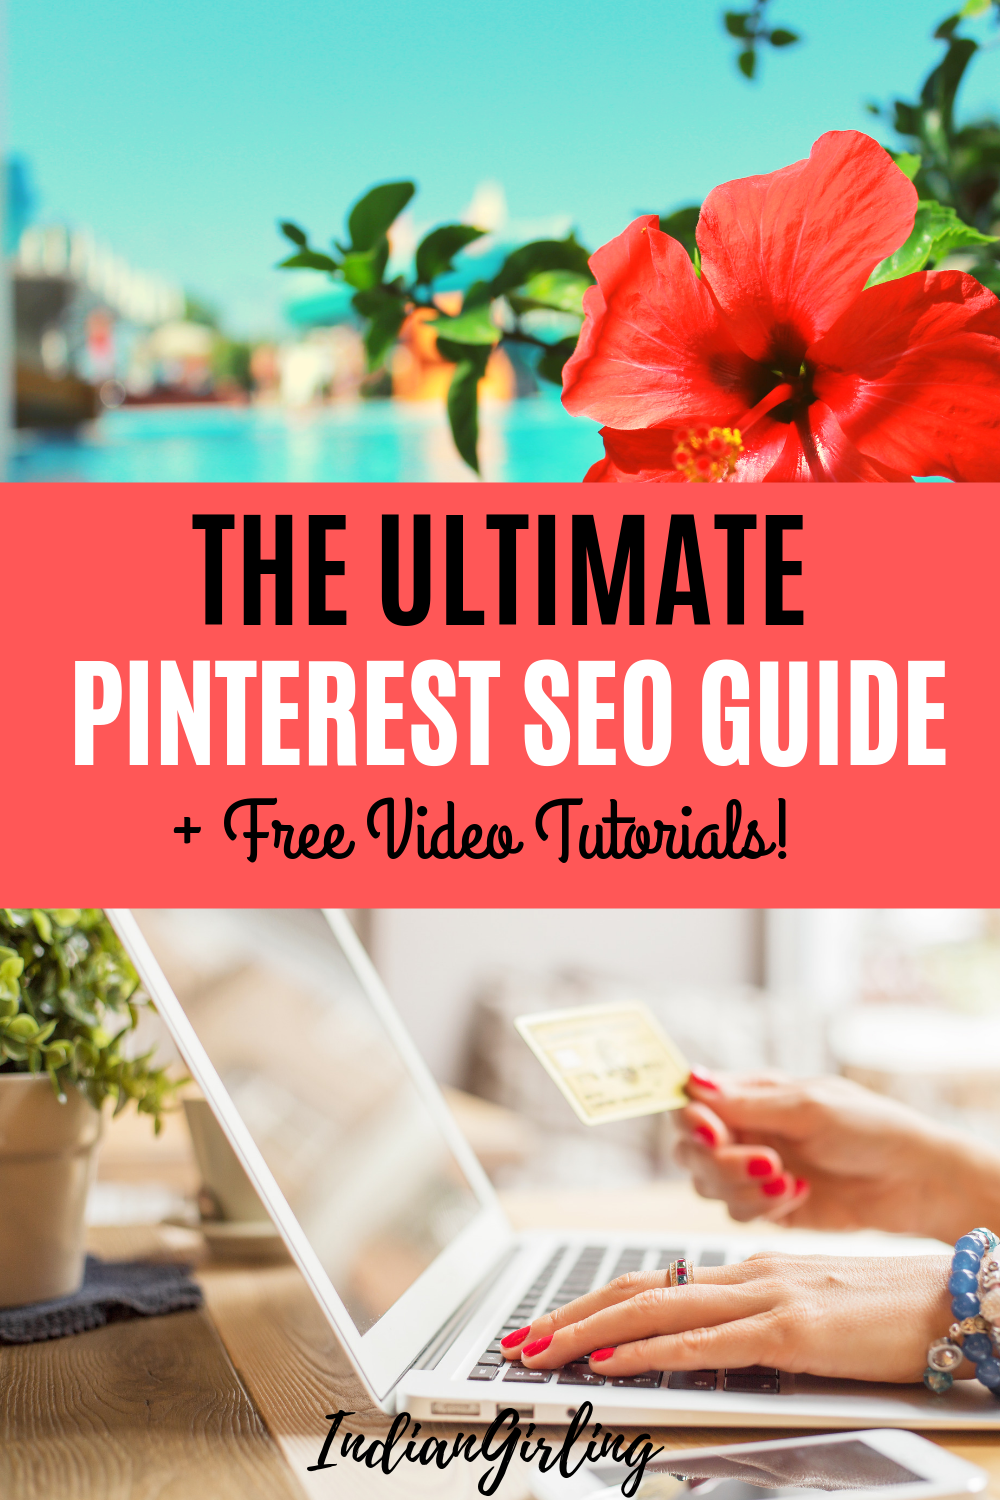 The Ultimate Pinterest SEO and Rich Pins Guide (With images) | Pinterest  seo, Seo guide